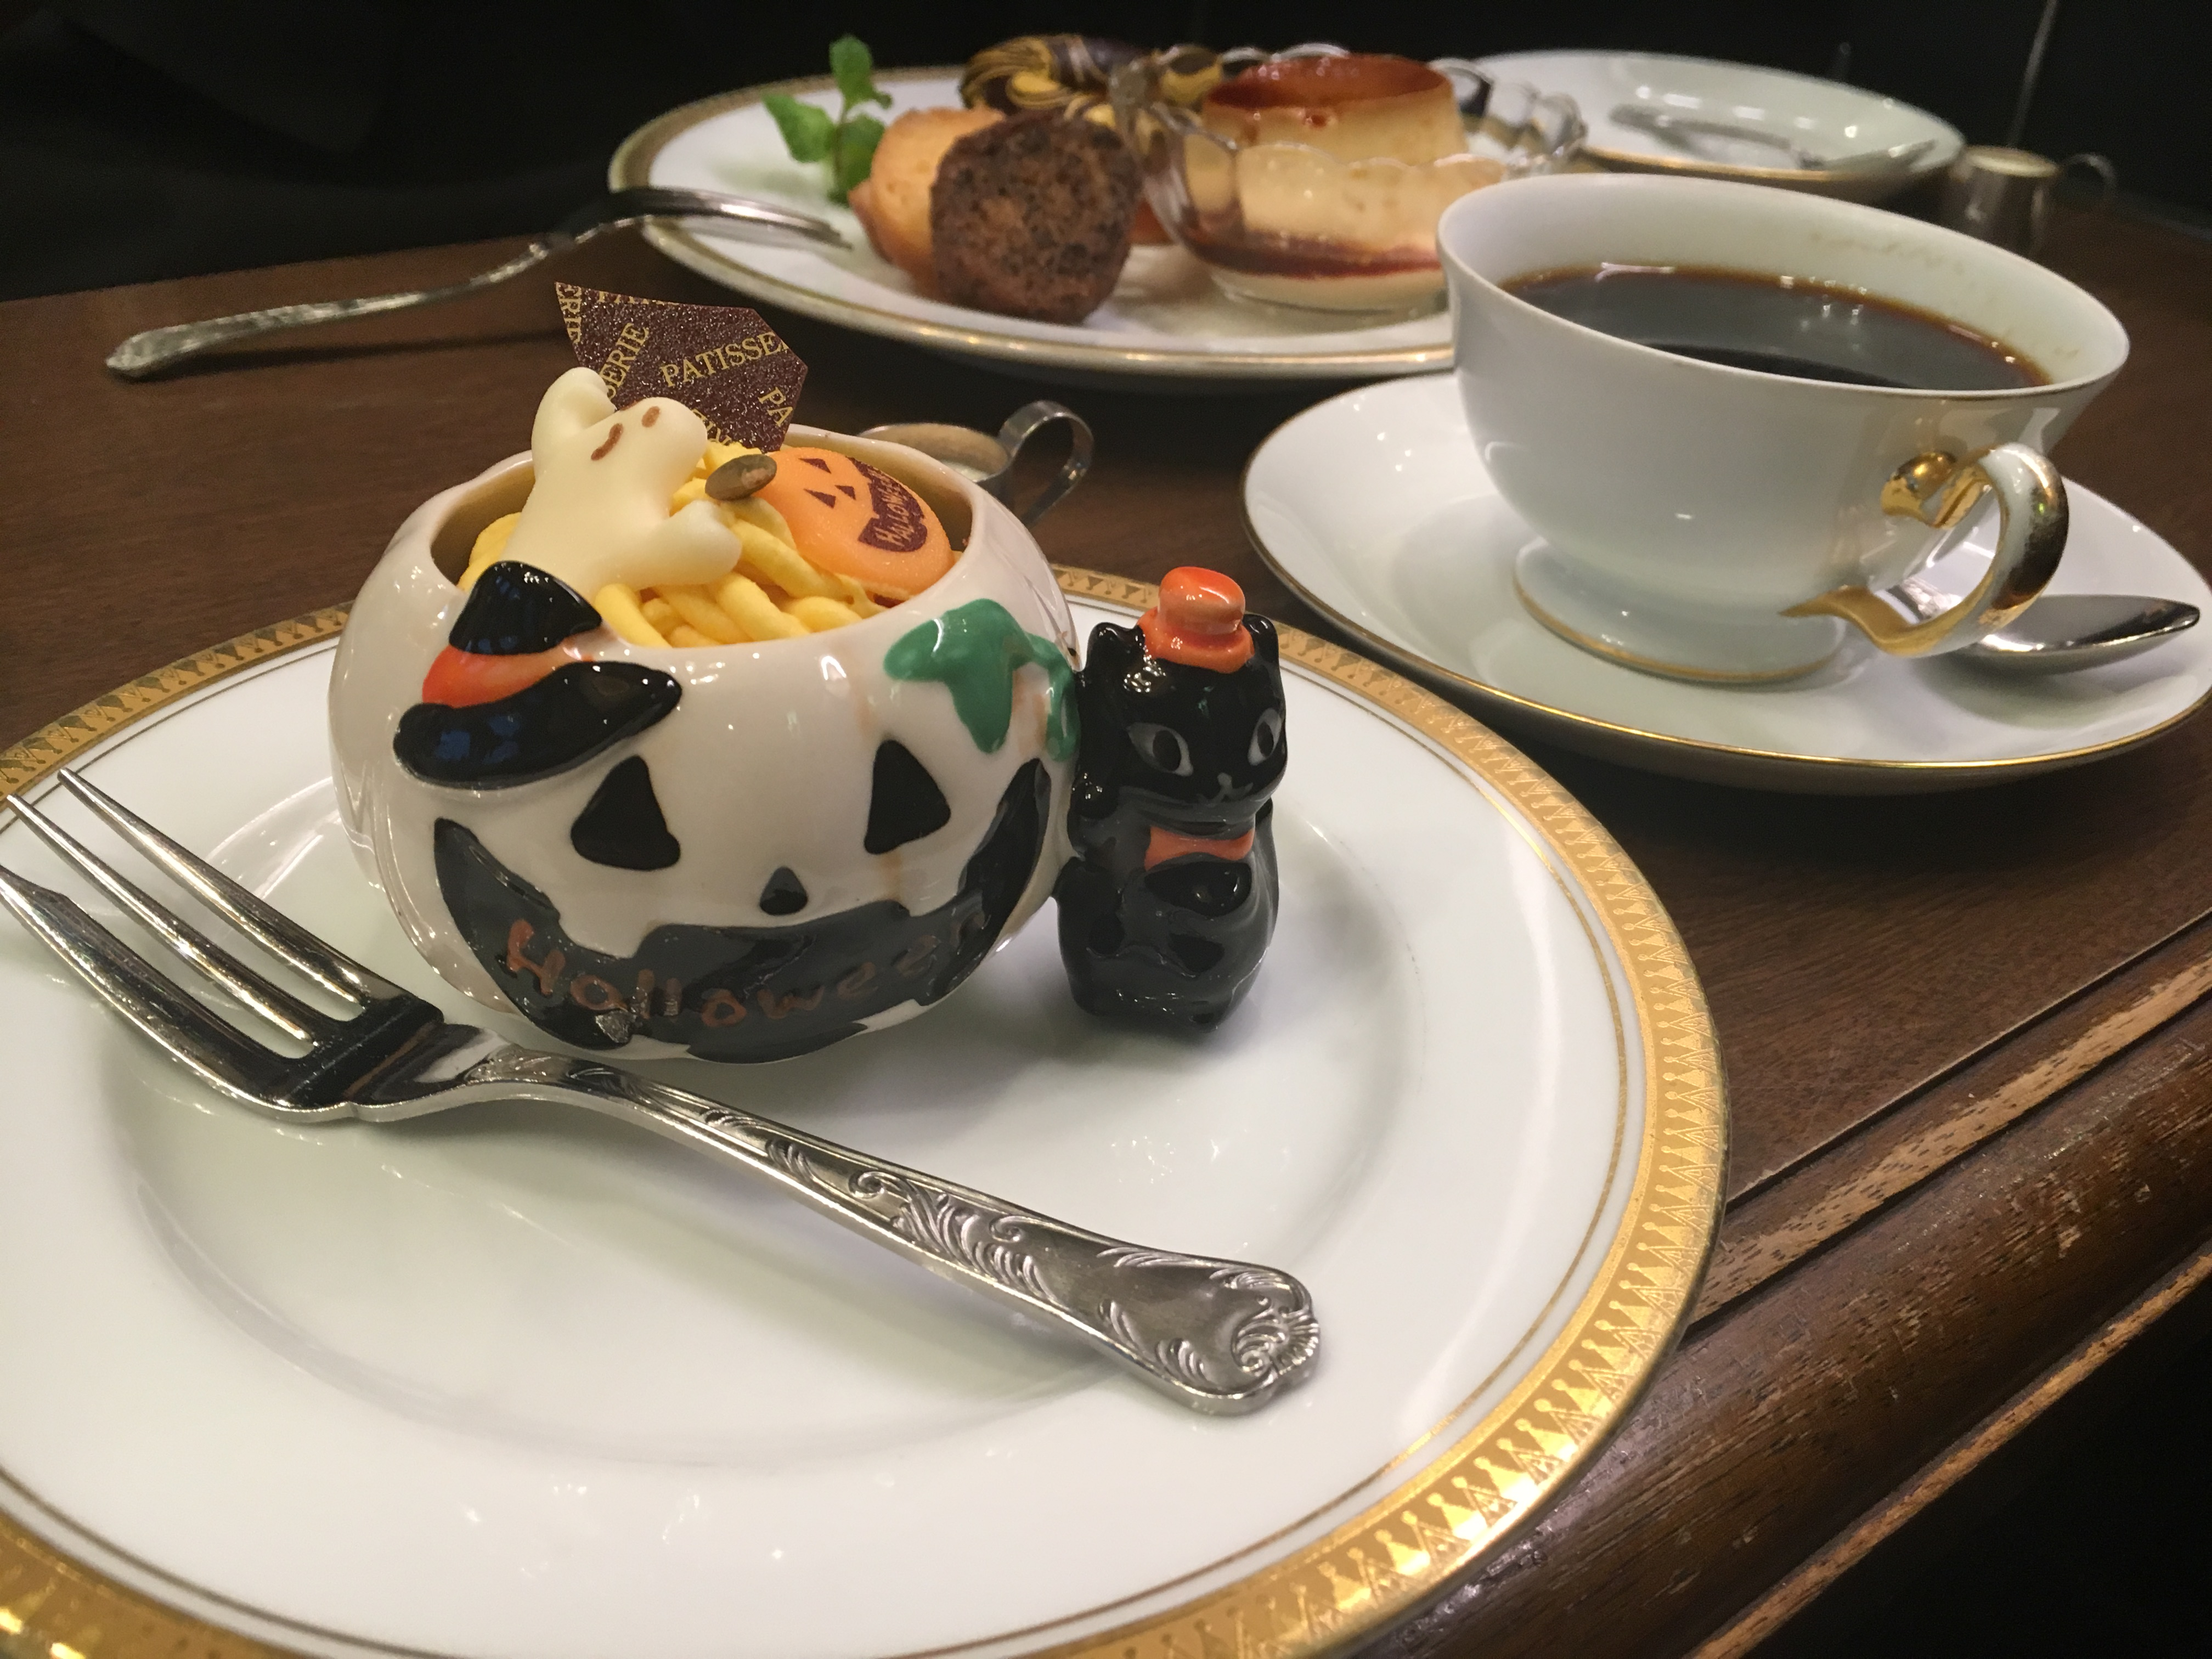 Halloween special kabocha cake set in Halloween dish with coffee